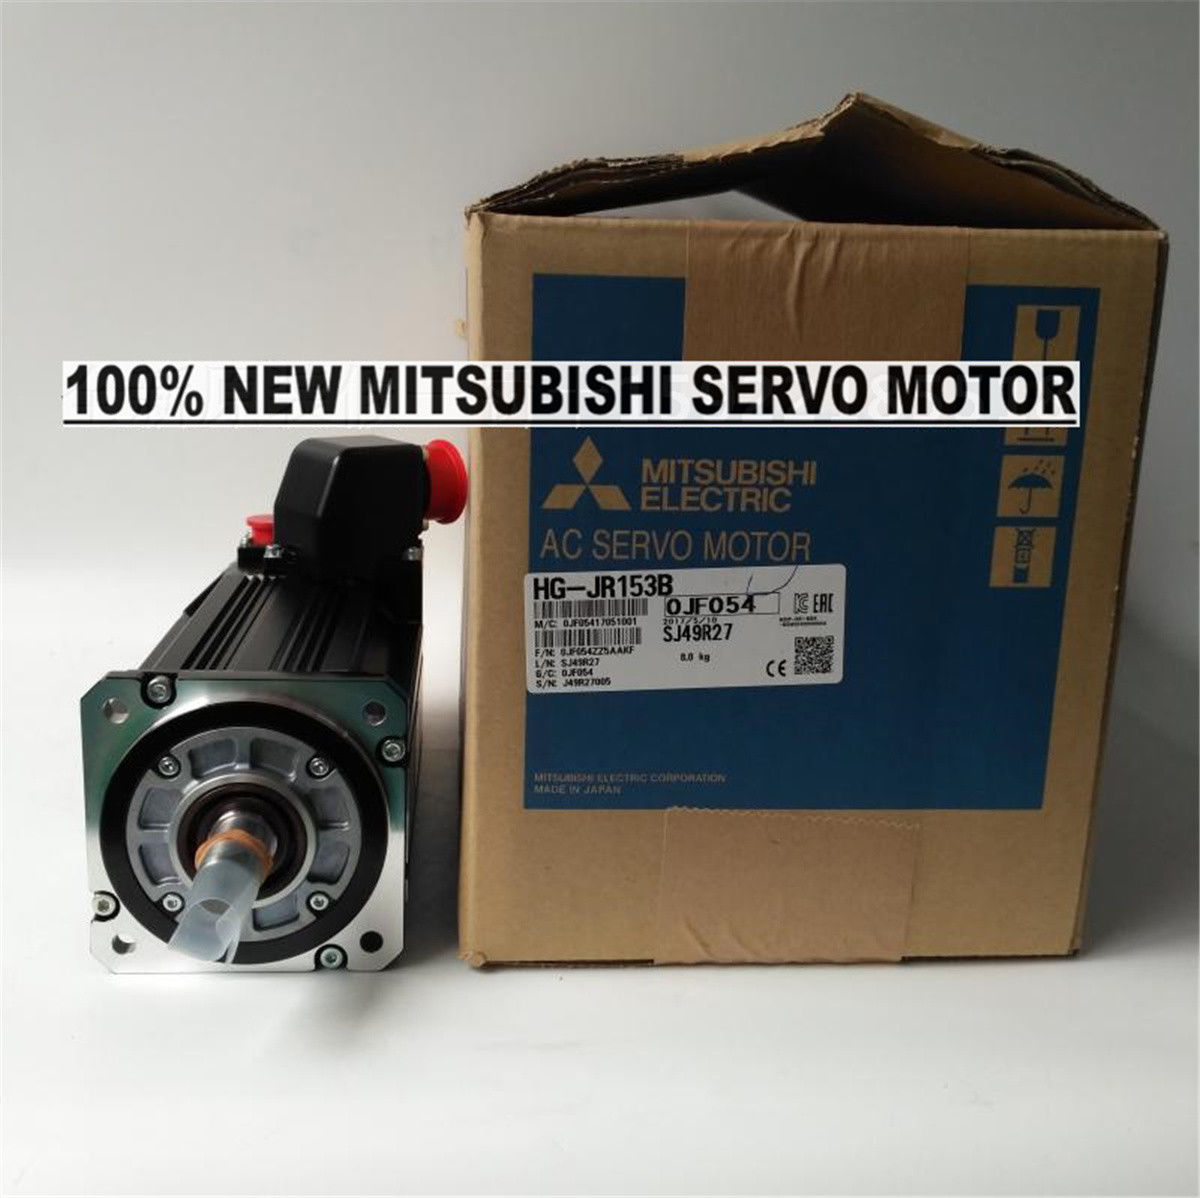 NEW Mitsubishi Servo Motor HG-JR153B in box HGJR153B